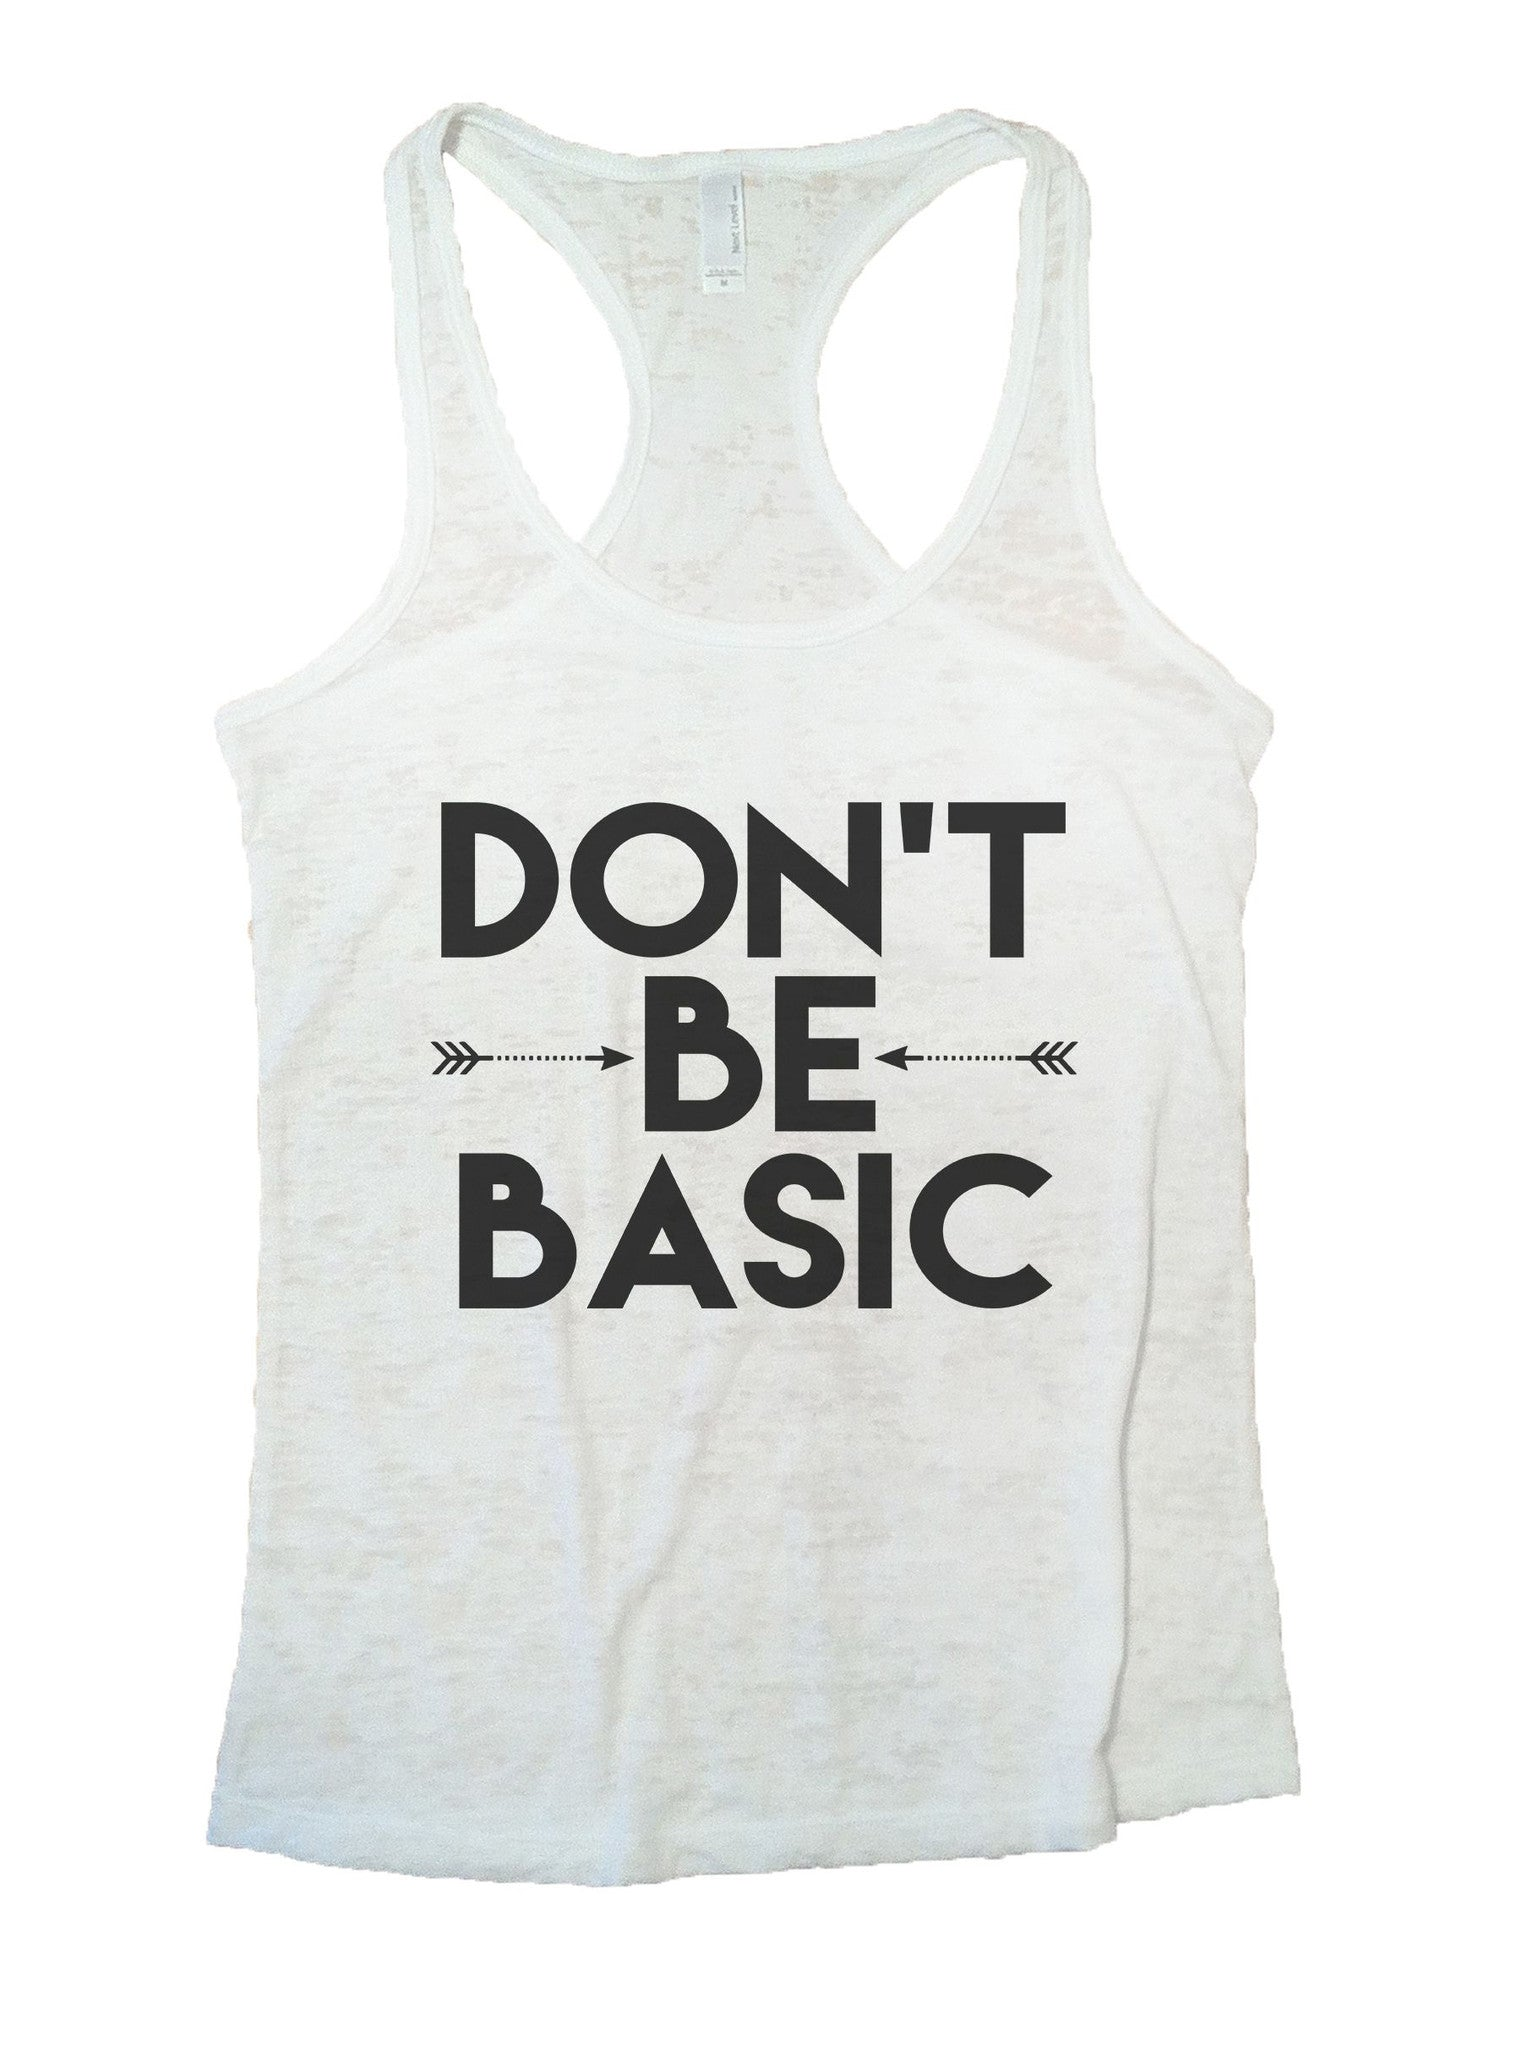 Don't Be Basic Burnout Tank Top By BurnoutTankTops.com - 920 - Funny Shirts Tank Tops Burnouts and Triblends  - 5